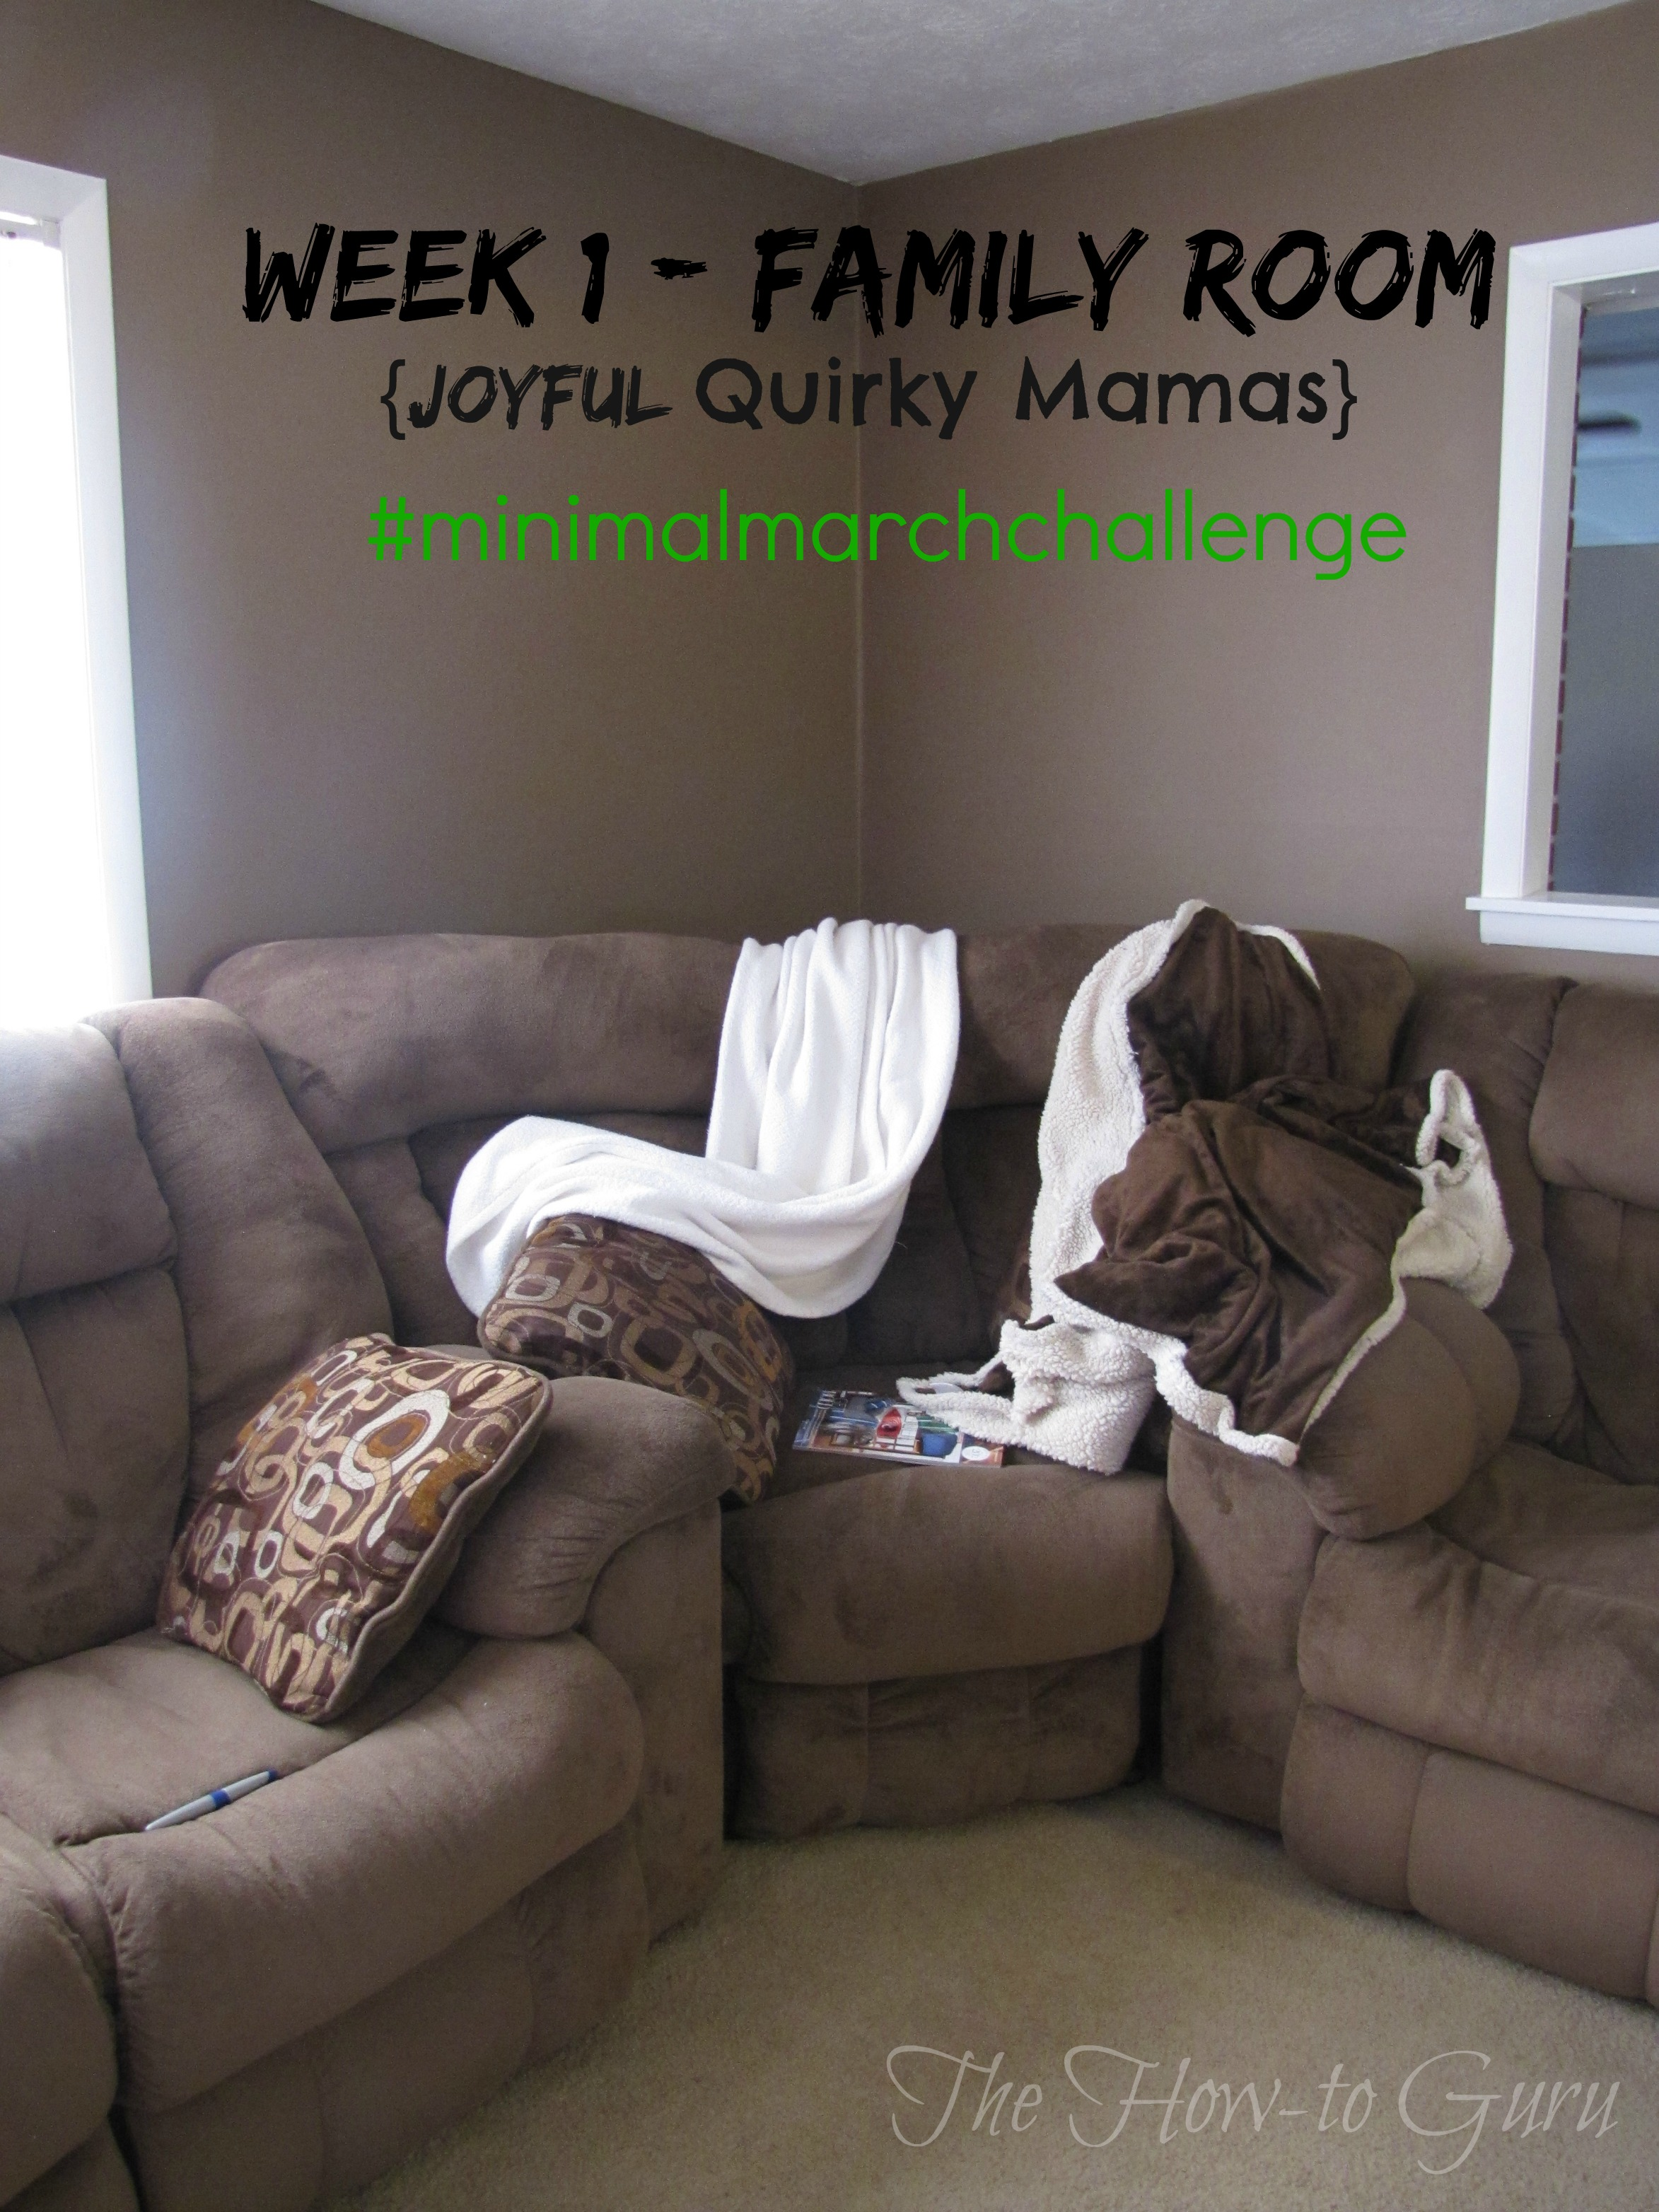 Minimal March Challenge: Family Room {Week 1 for Joyful Quirky Mamas}